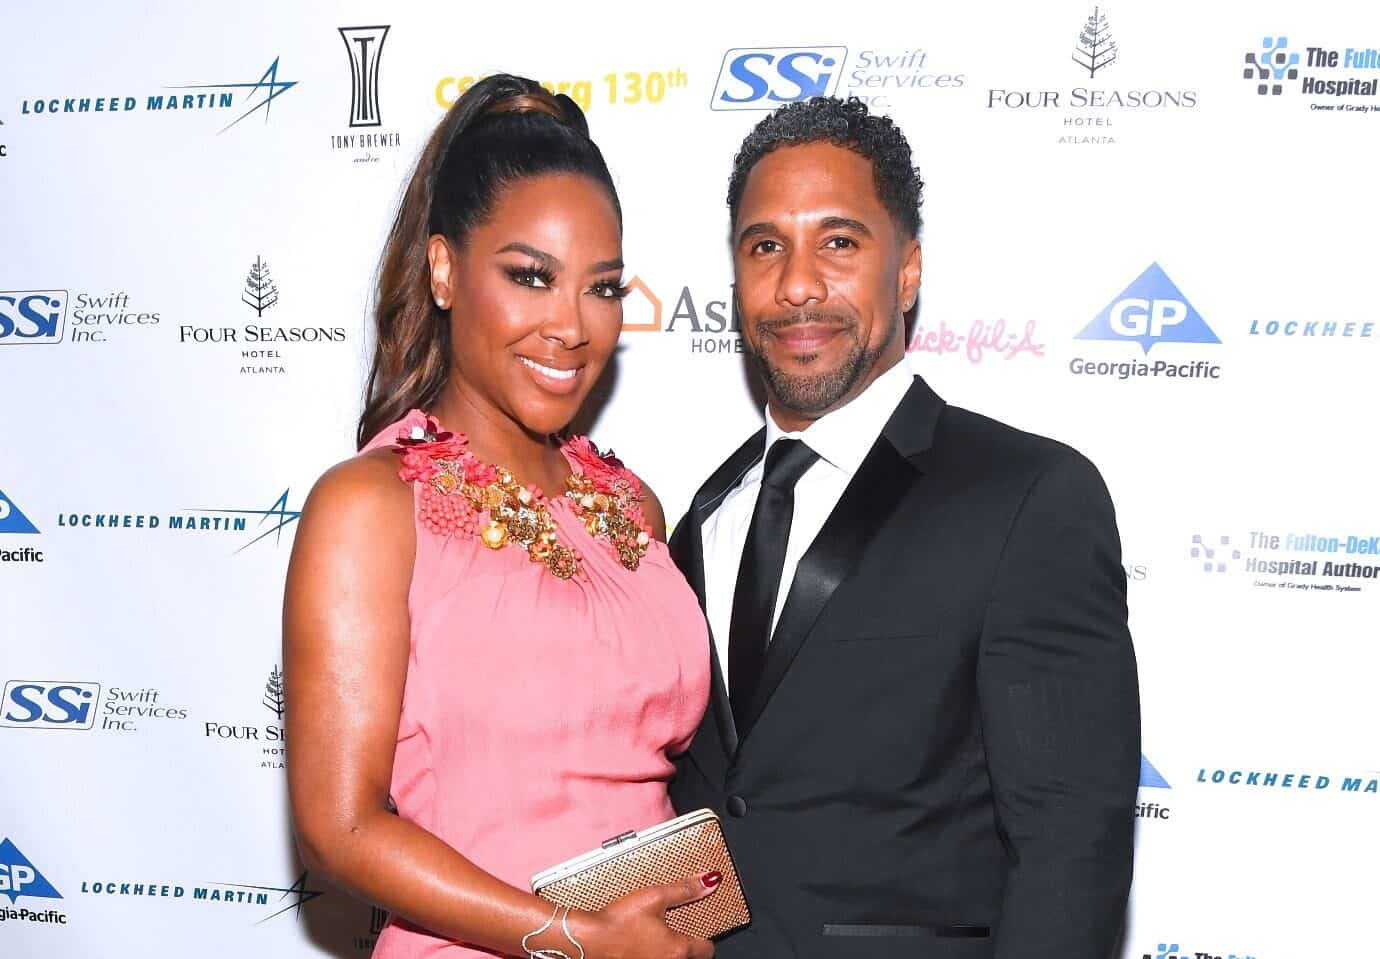 RHOA Star Marc Daly Confirms Divorce is Back on With Kenya Moore as He Breaks His Silence in New Statement